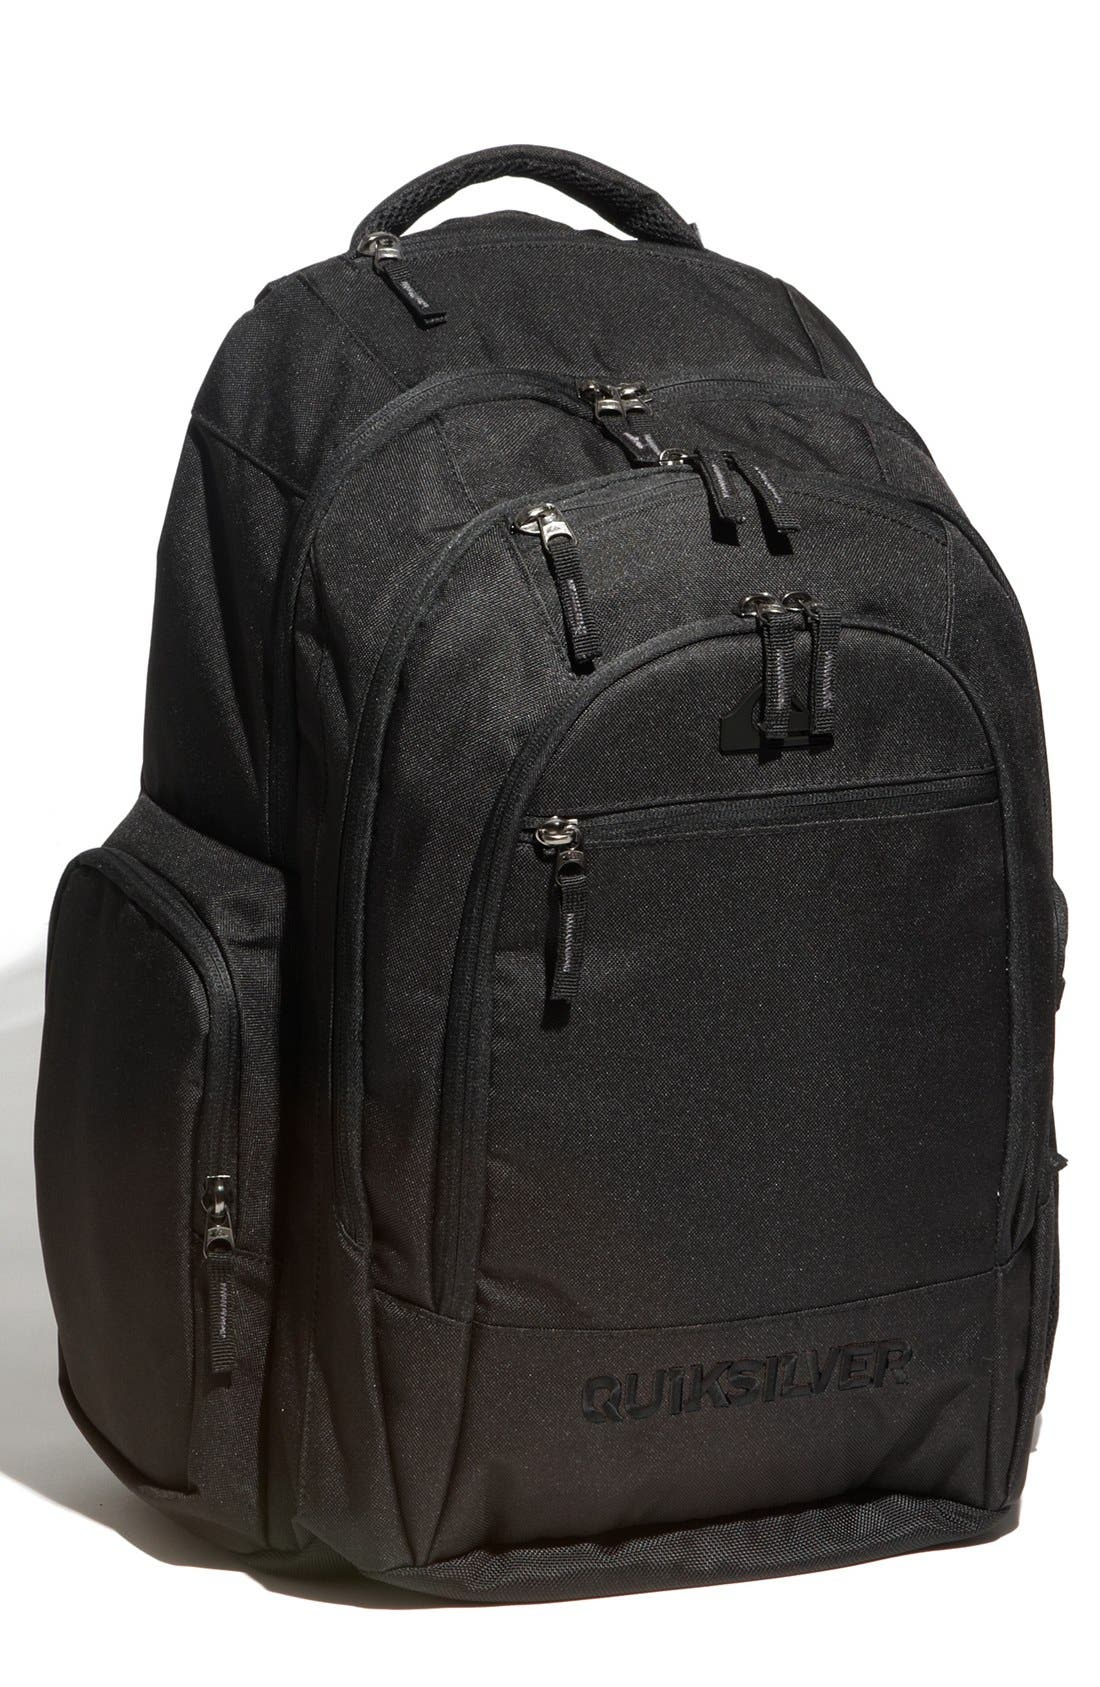 Main Image - Quiksilver 'Daddy' Day Bag